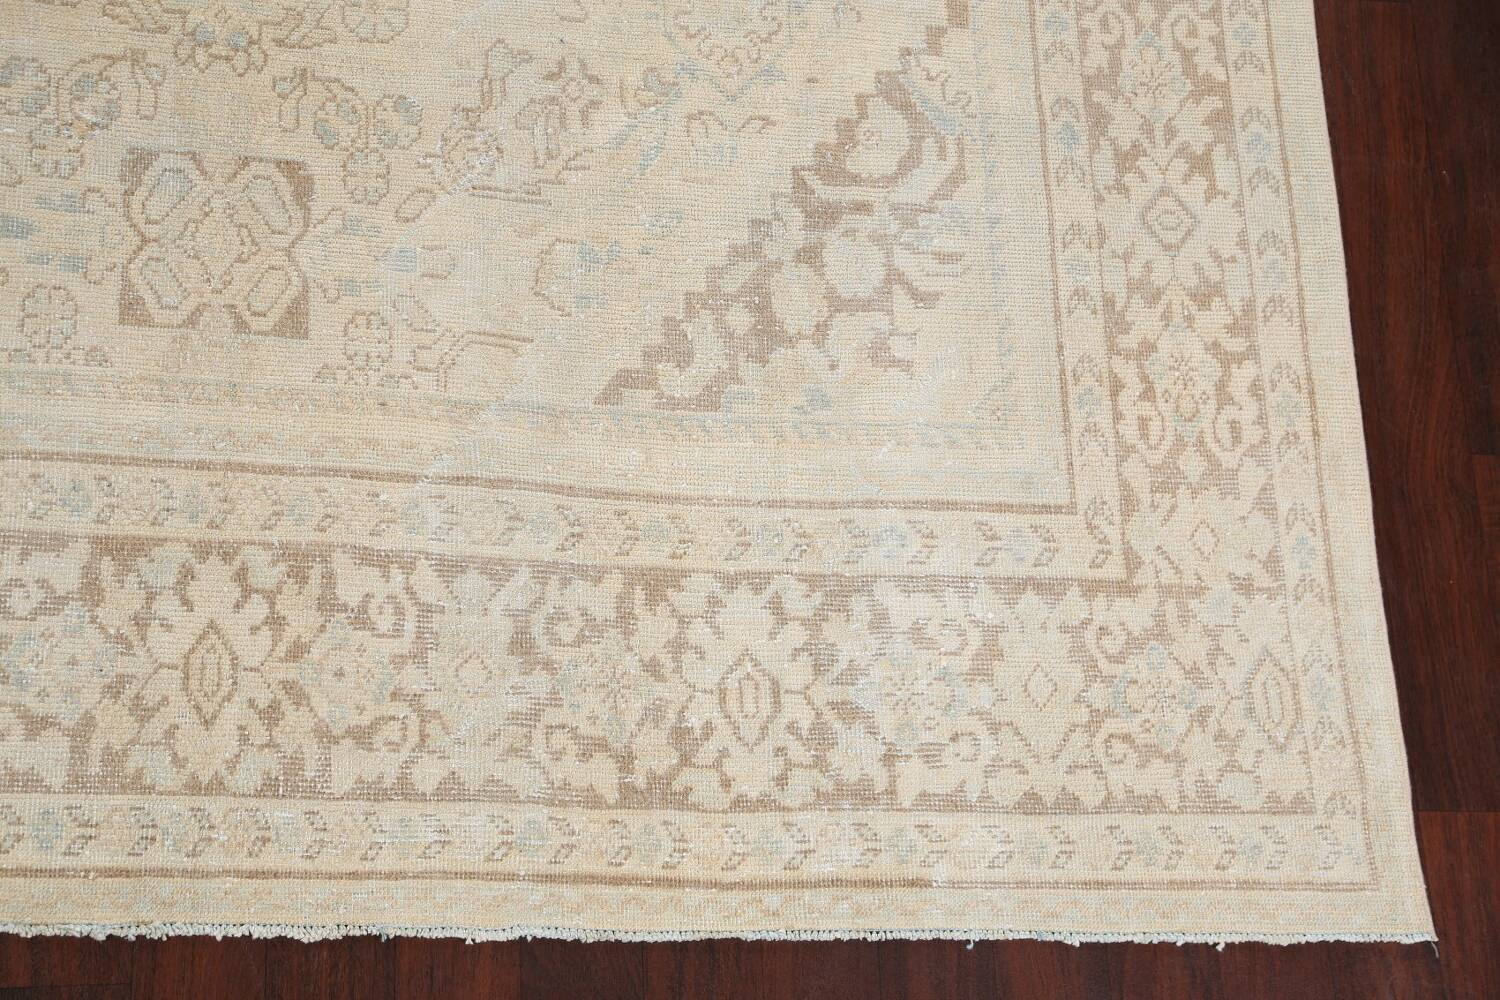 Antique Floral Mahal Persian Area Rug 9x12 image 5